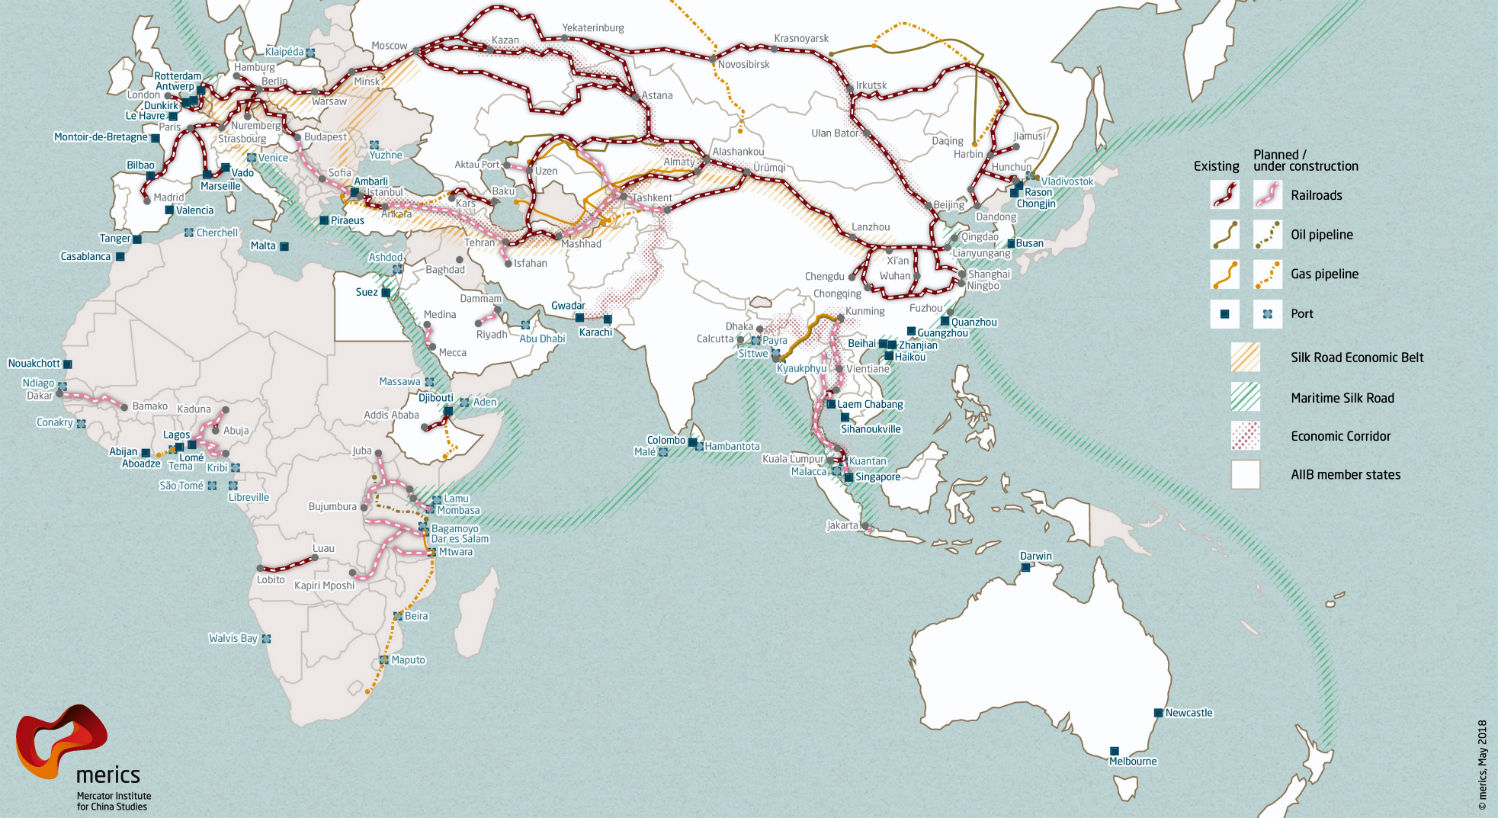 Implications for Africa from China's One Belt One Road